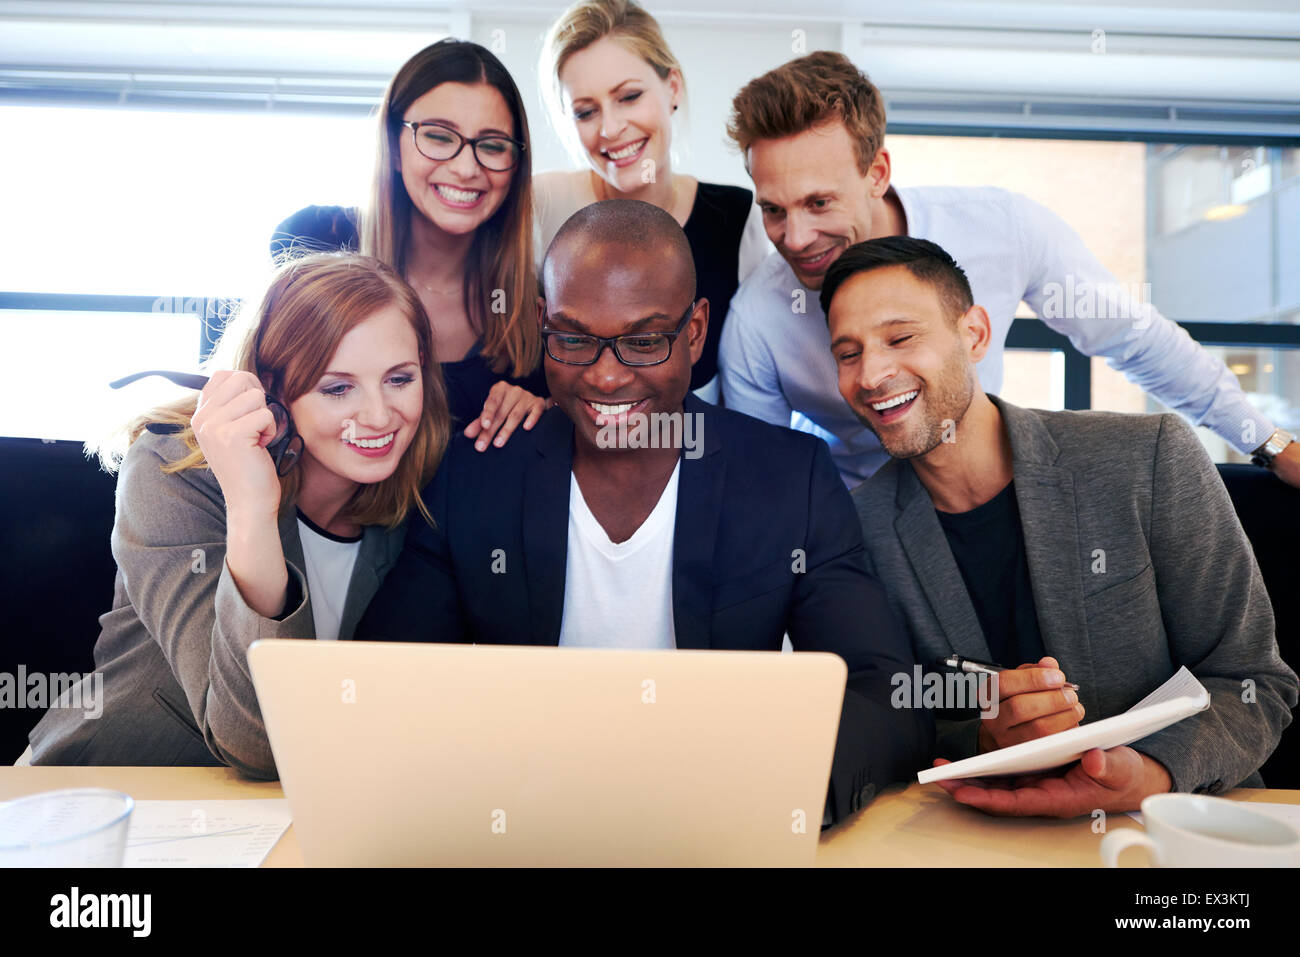 Group of executives smiling and gathered together looking at laptop - Stock Image